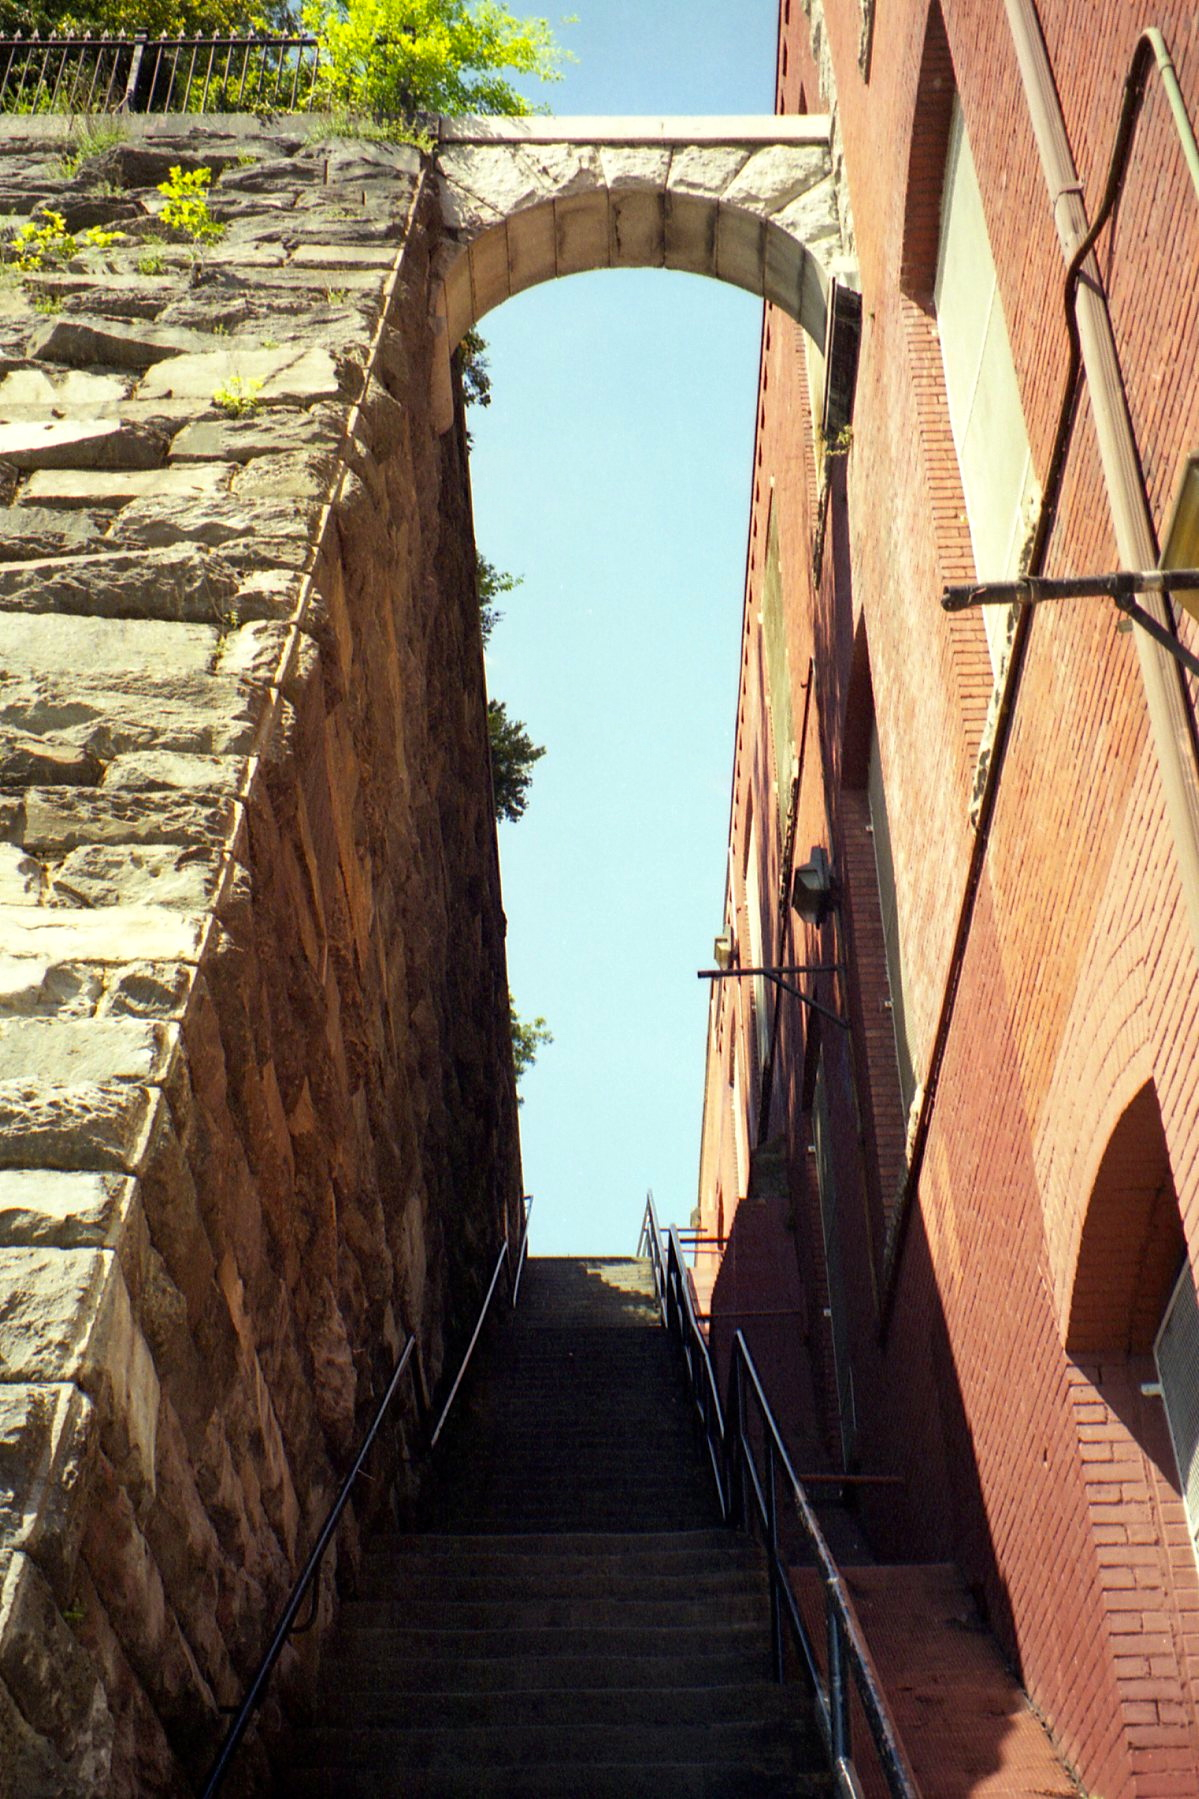 The famous steps from the climax of The Exorcist (photographed in 2000)